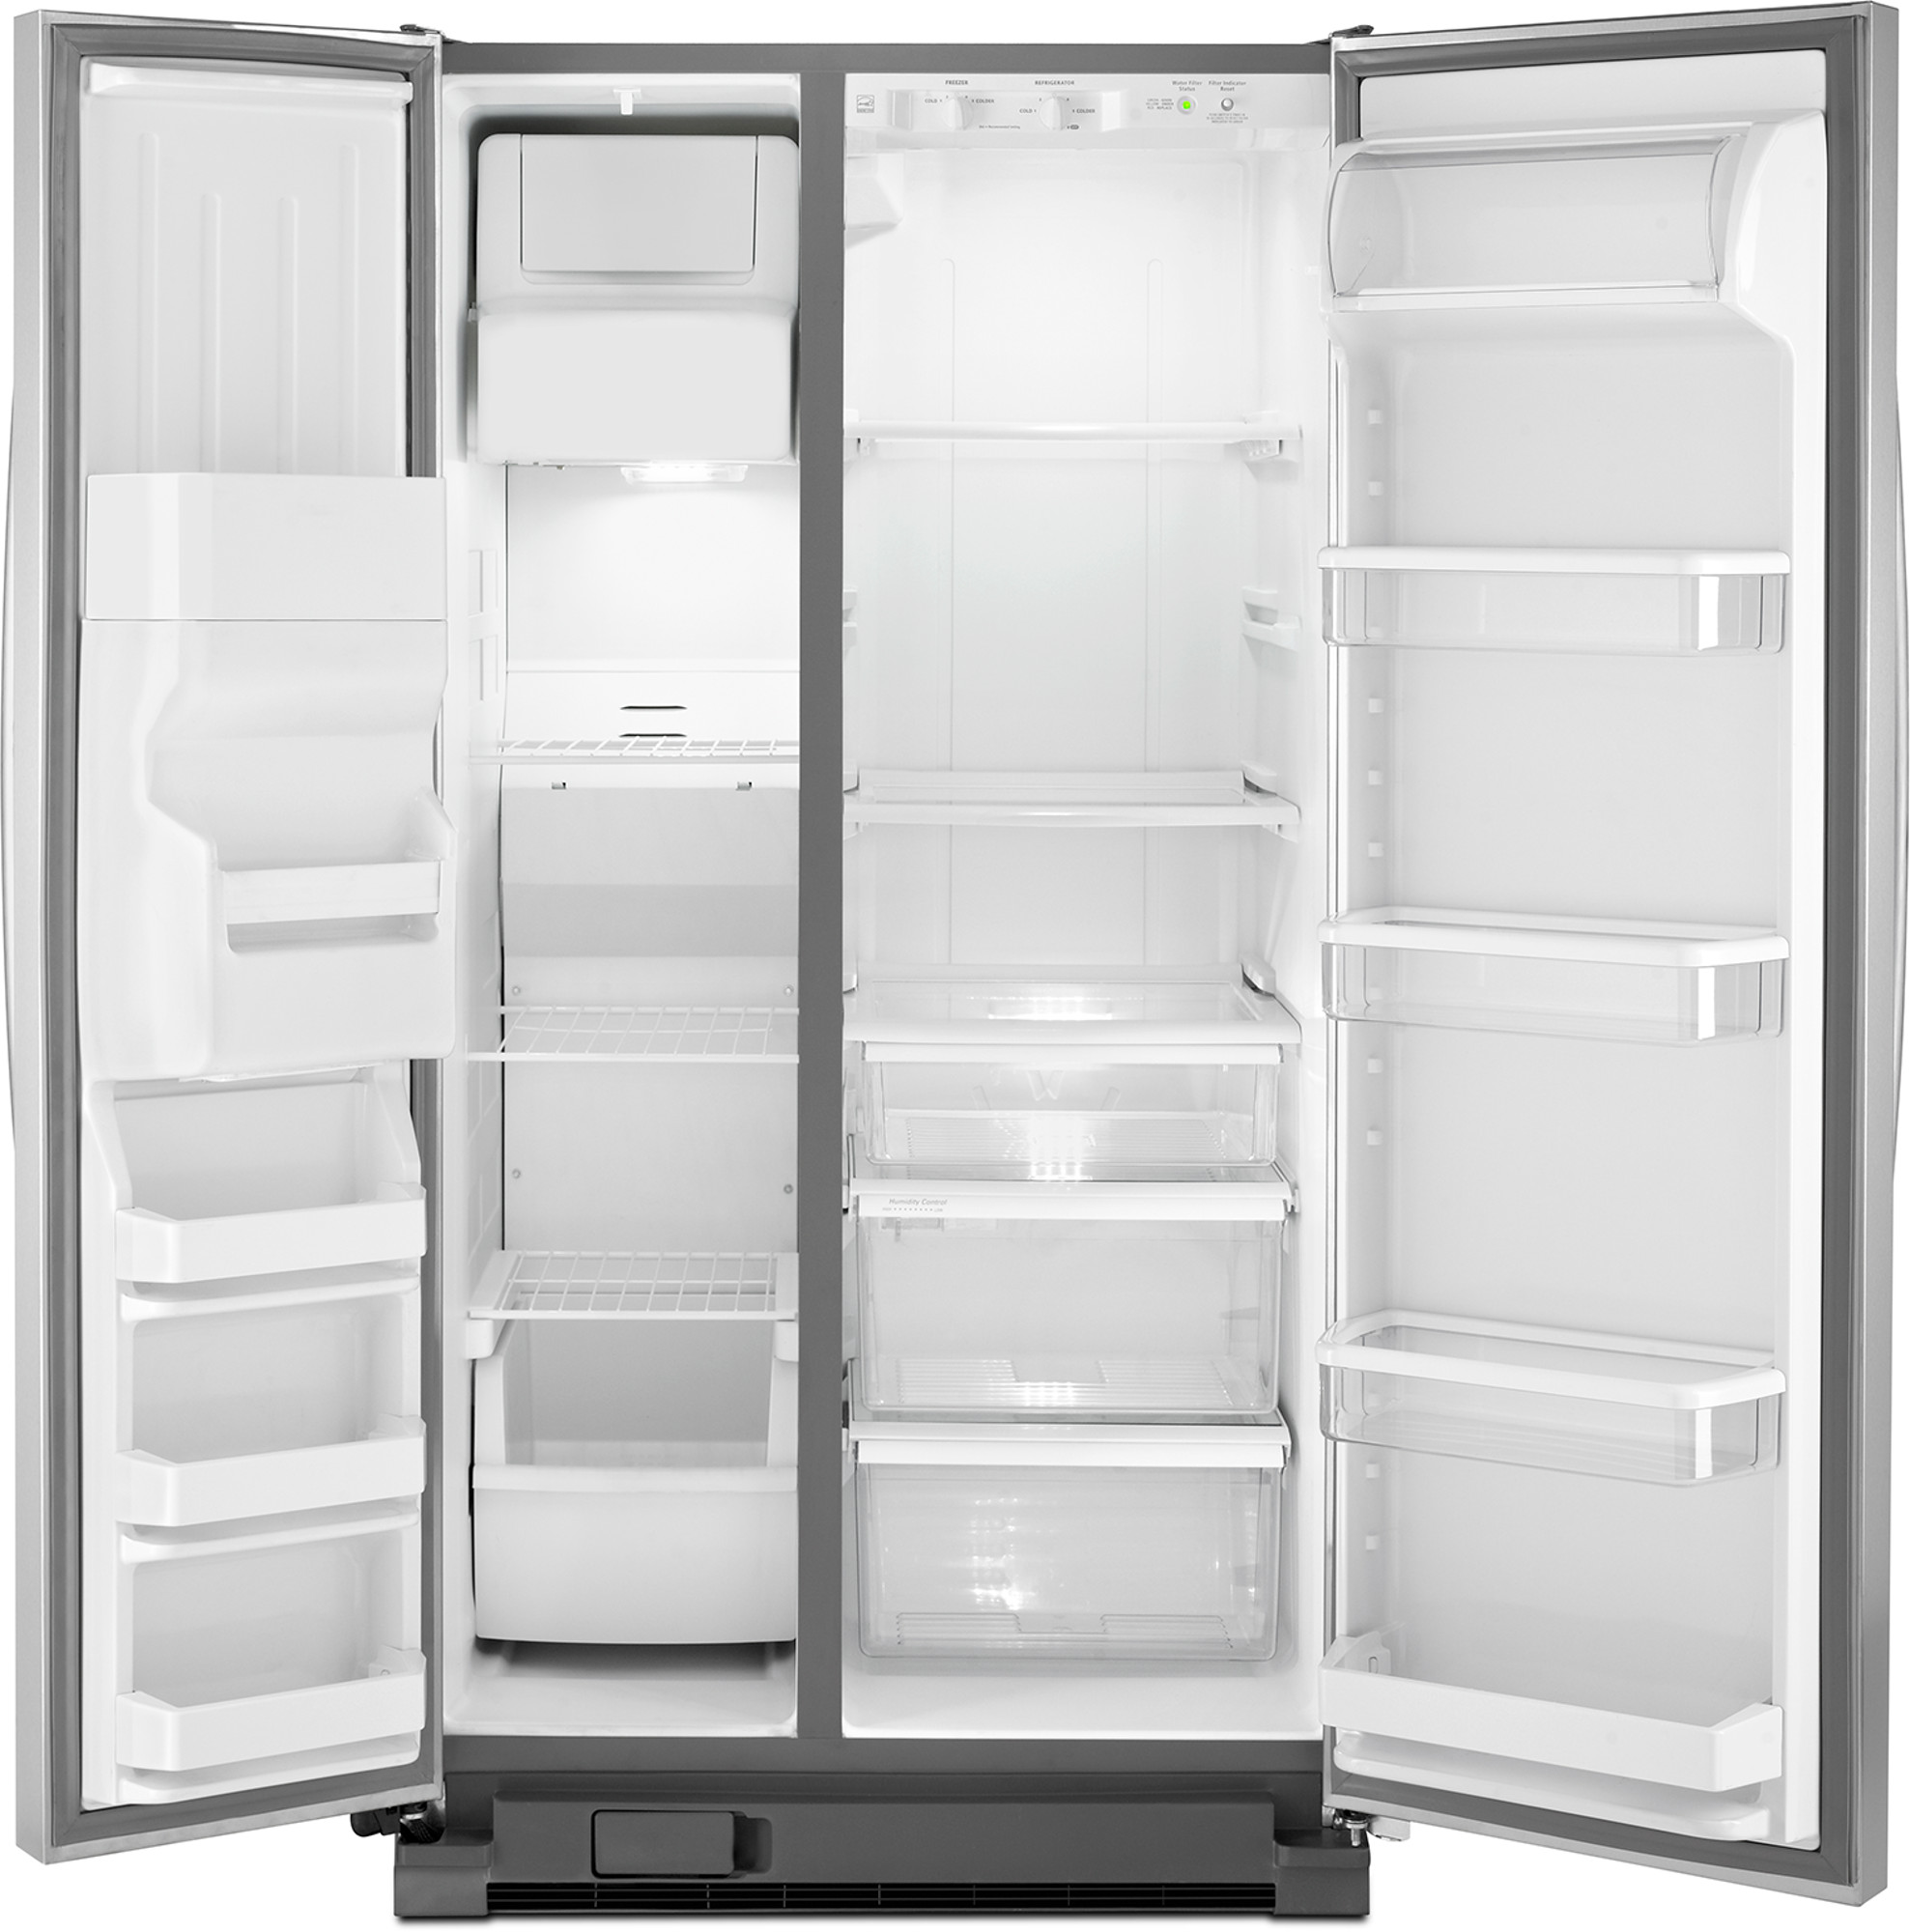 Whirlpool WRS331FDDM 21 cu. ft. Side-by-Side Refrigerator w/ Ice/Water Dispenser - Stainless Steel